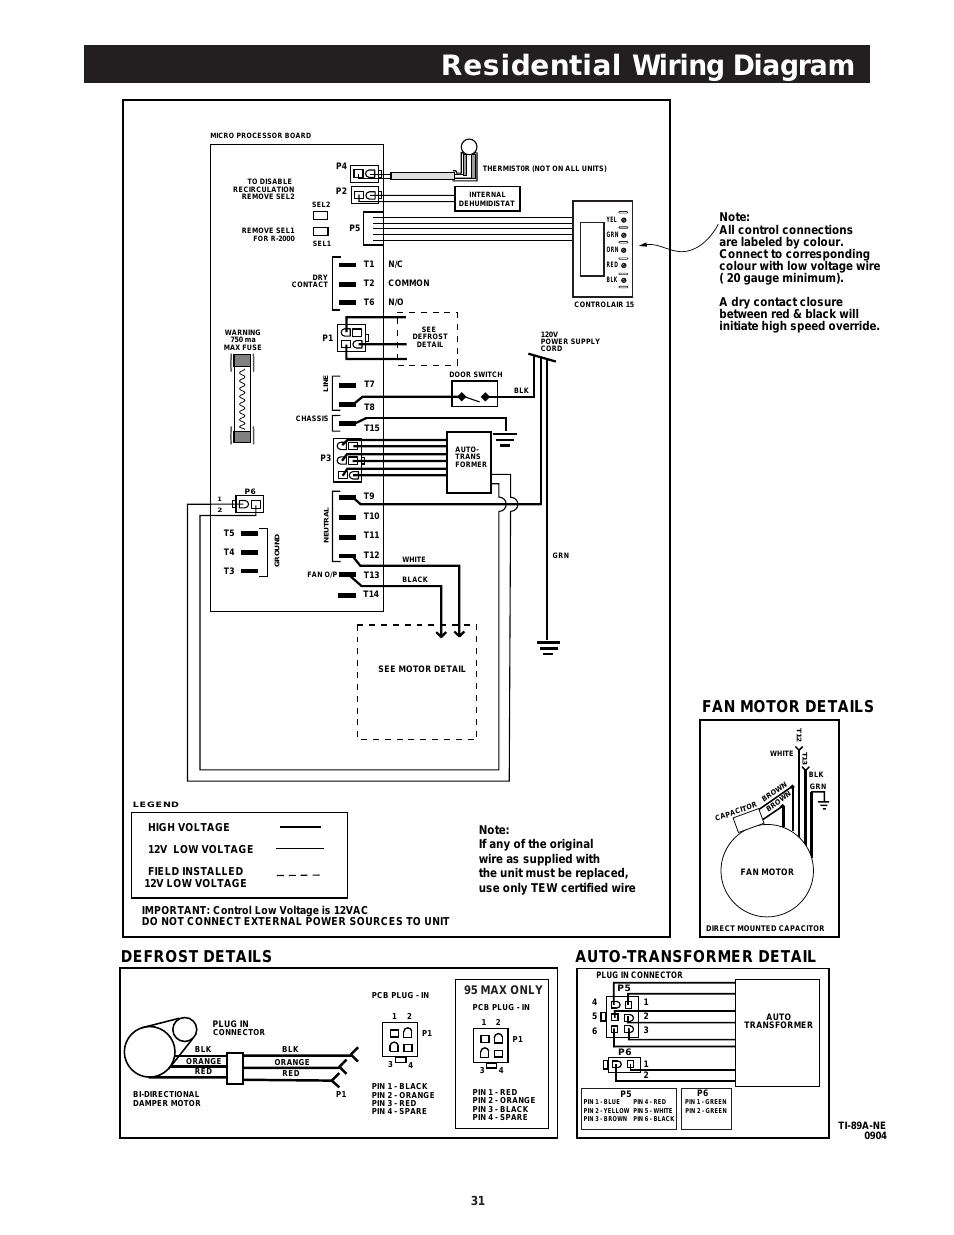 The Best 12 Way To Read Auto Wiring Diagrams Ideas ,  https://bacamajalah.com/the-best-12-way-to-read-a… | Diagram, Electrical  wiring diagram, Electronic engineeringPinterest